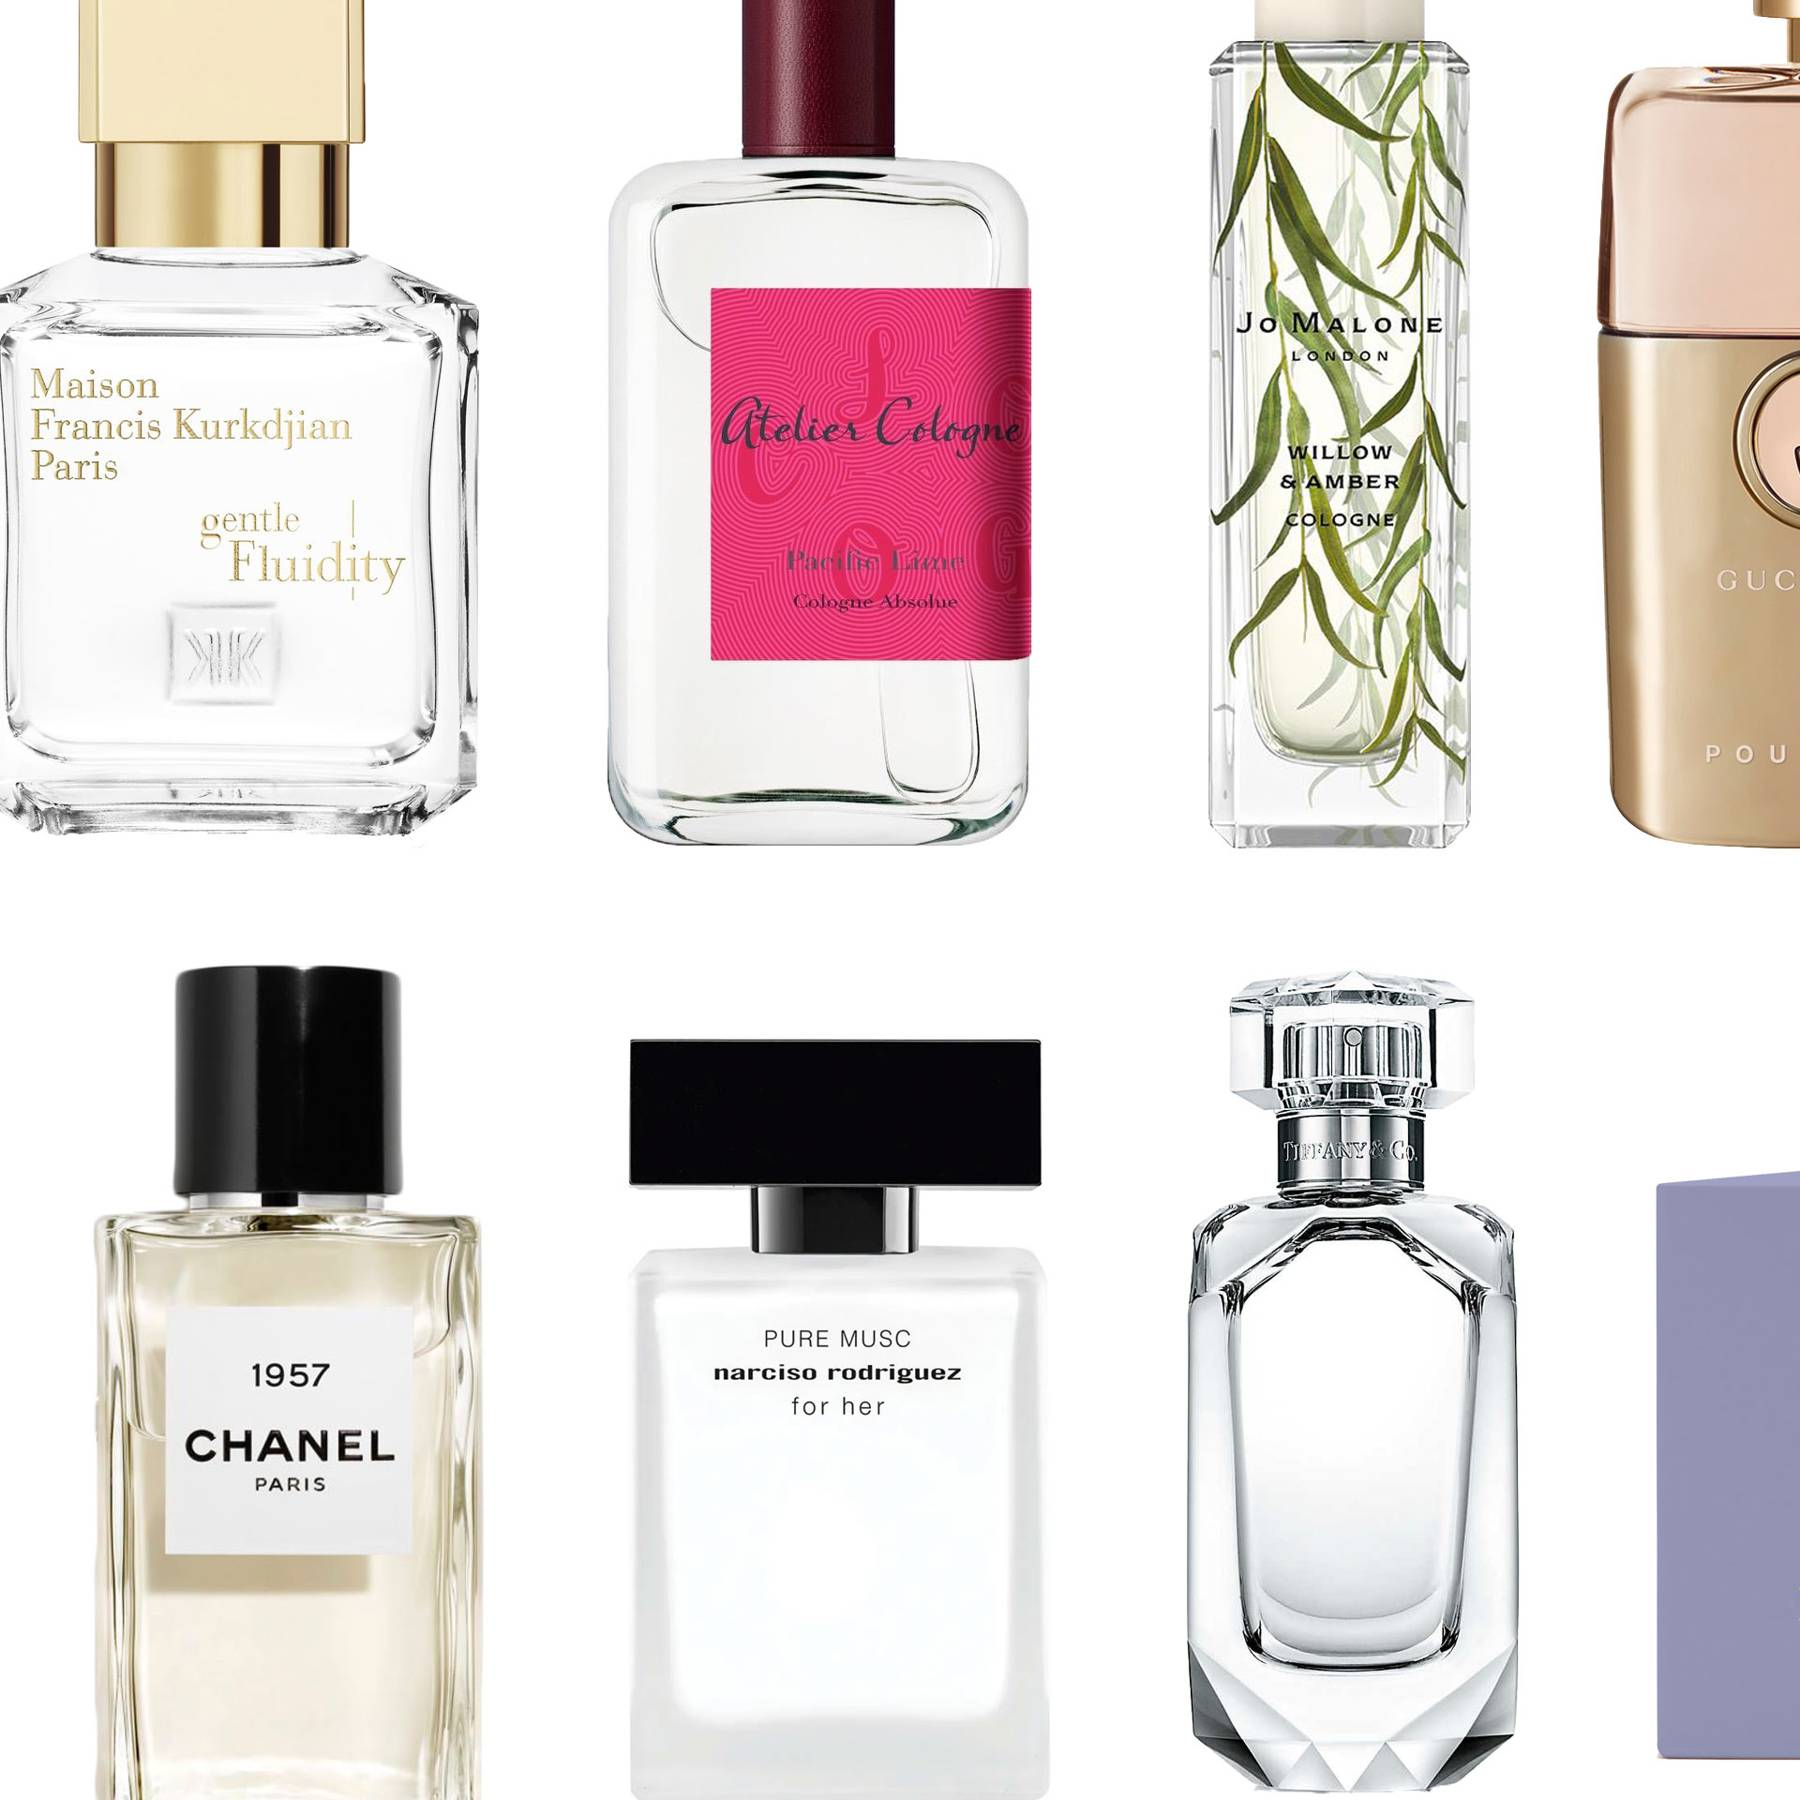 7ee7a2a1e00 10 Best New Fragrances   Perfumes 2019